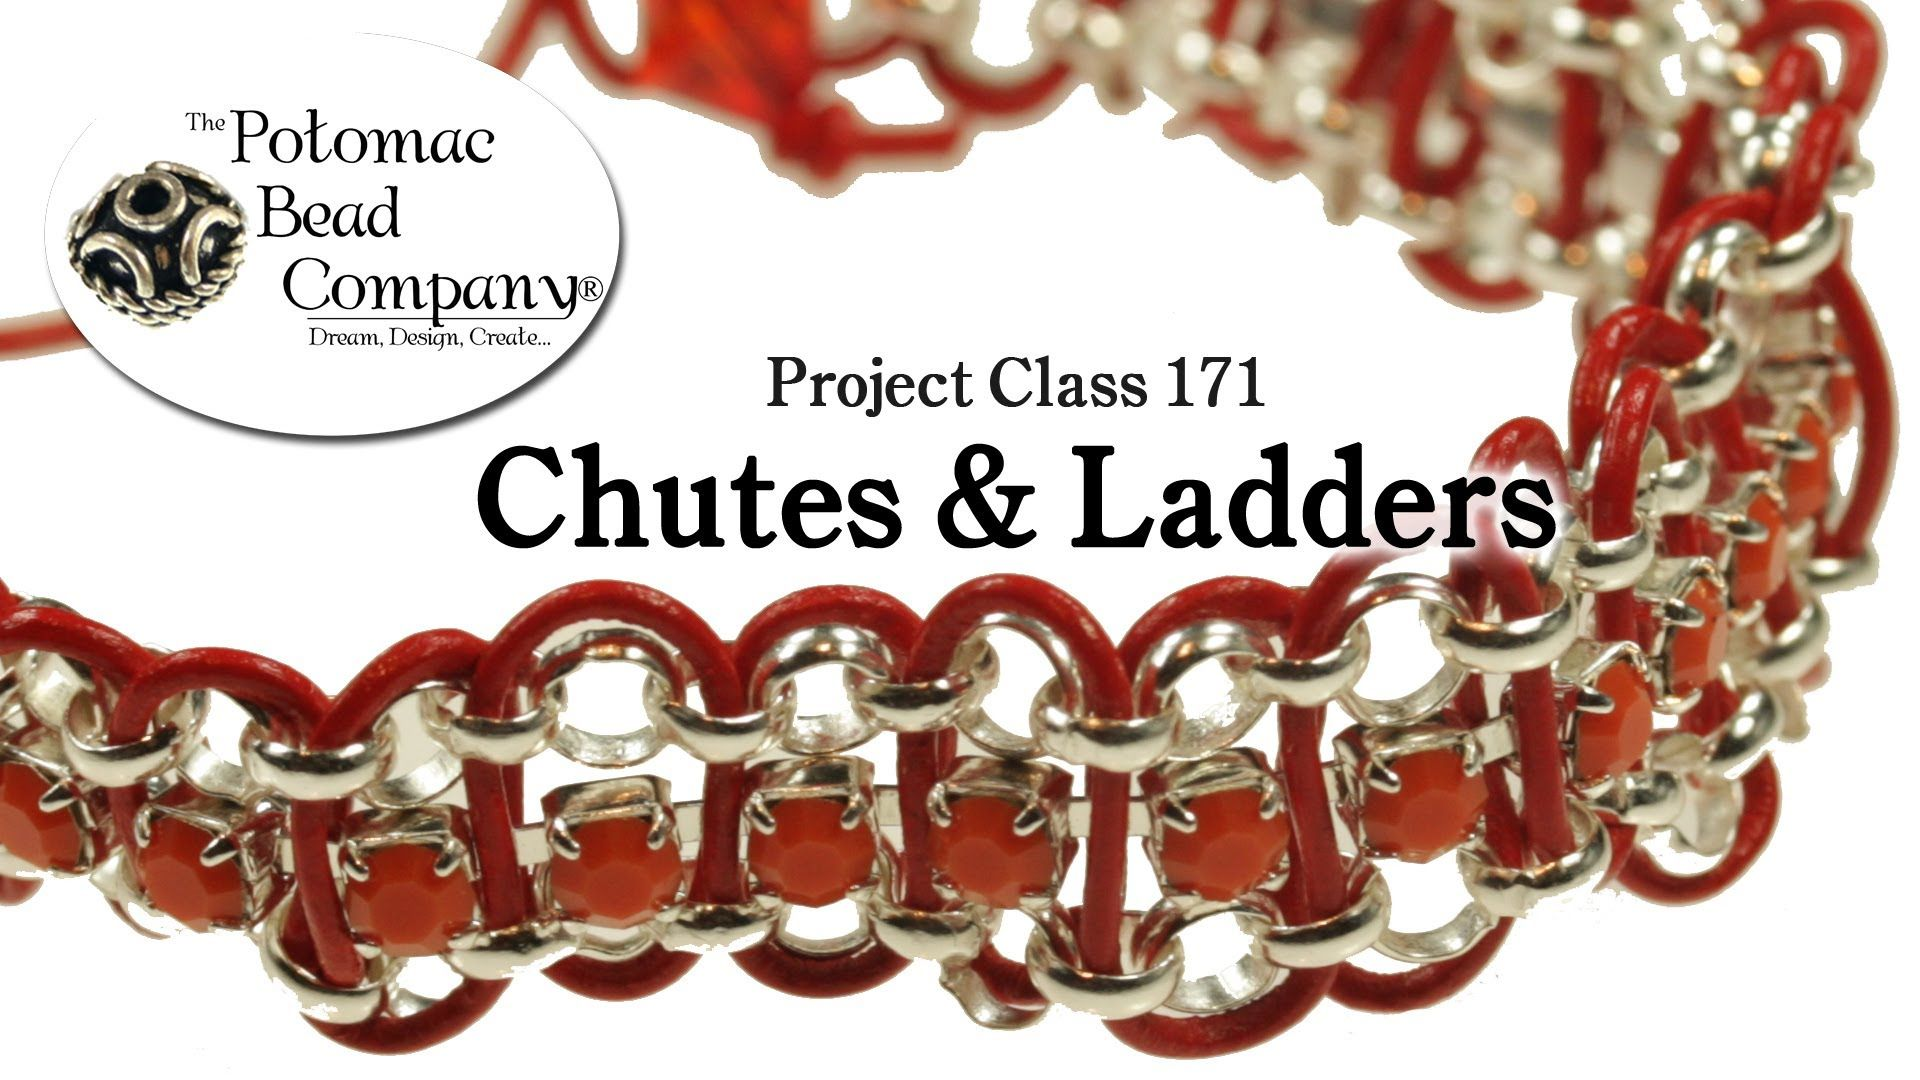 Chutes u ladders bracelet project class leather u cupchain